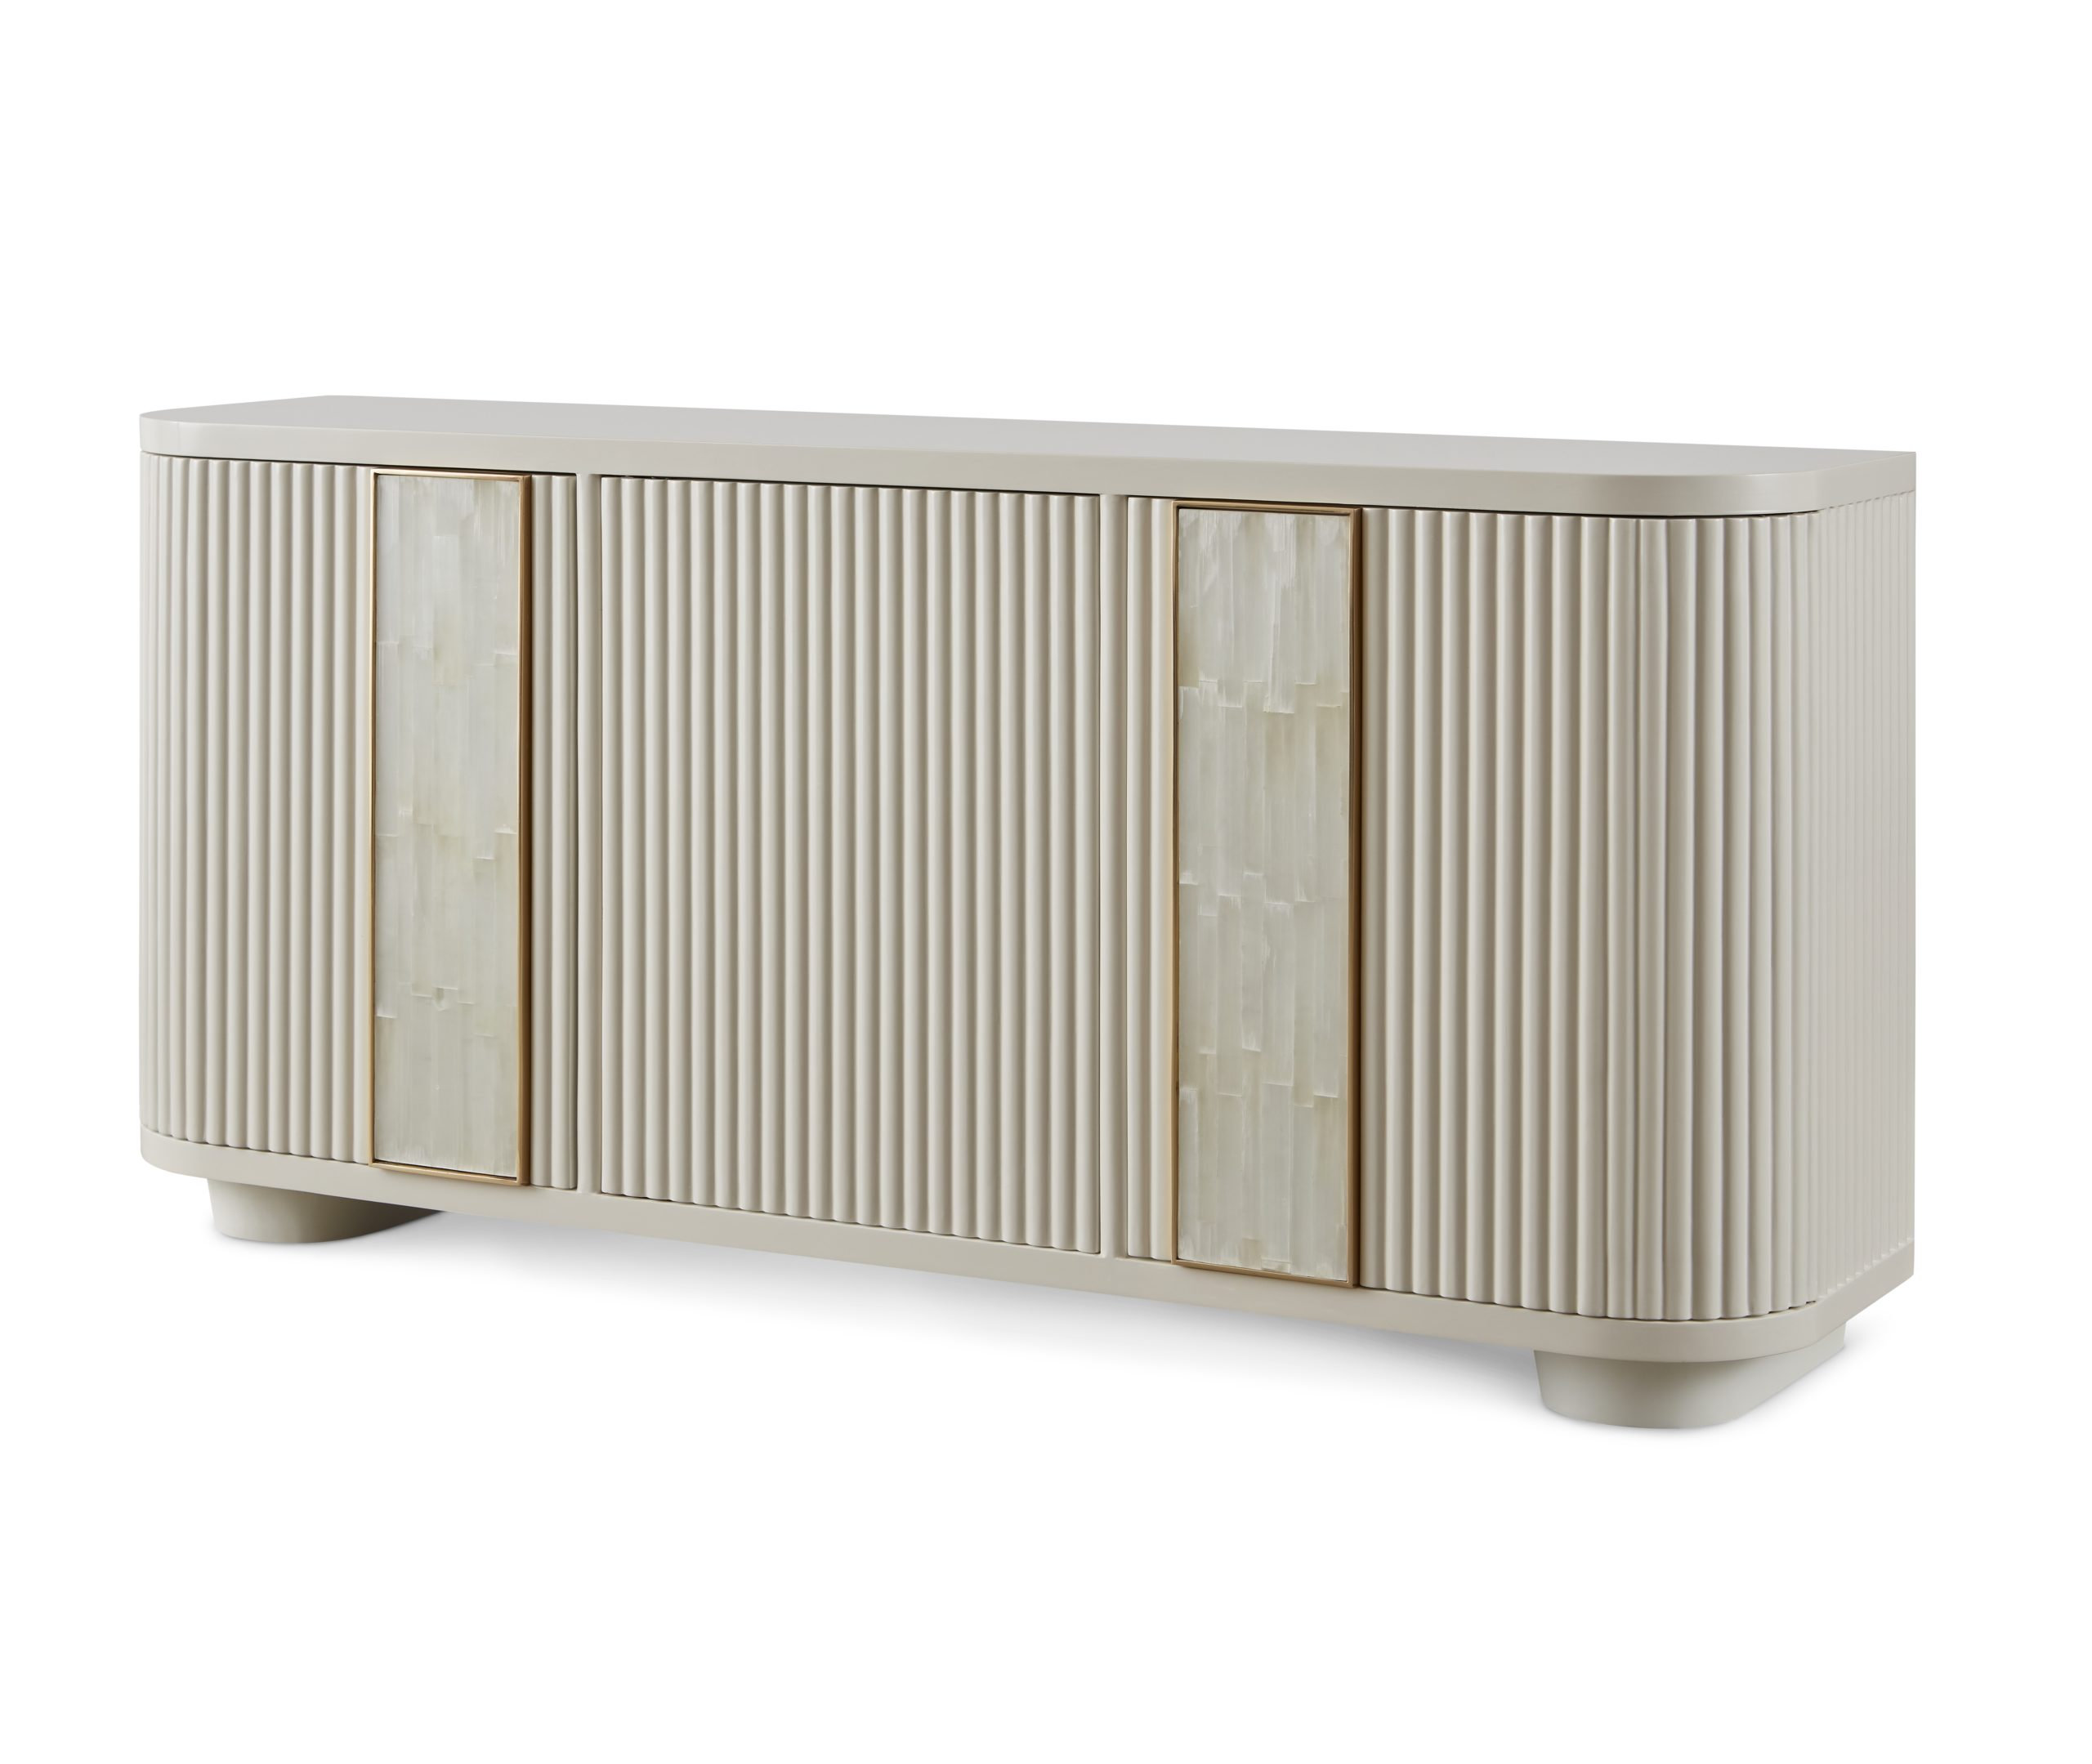 Baker_products_WNWN_harmony_credenza_BAA3275_FRONT_3QRT-scaled-1